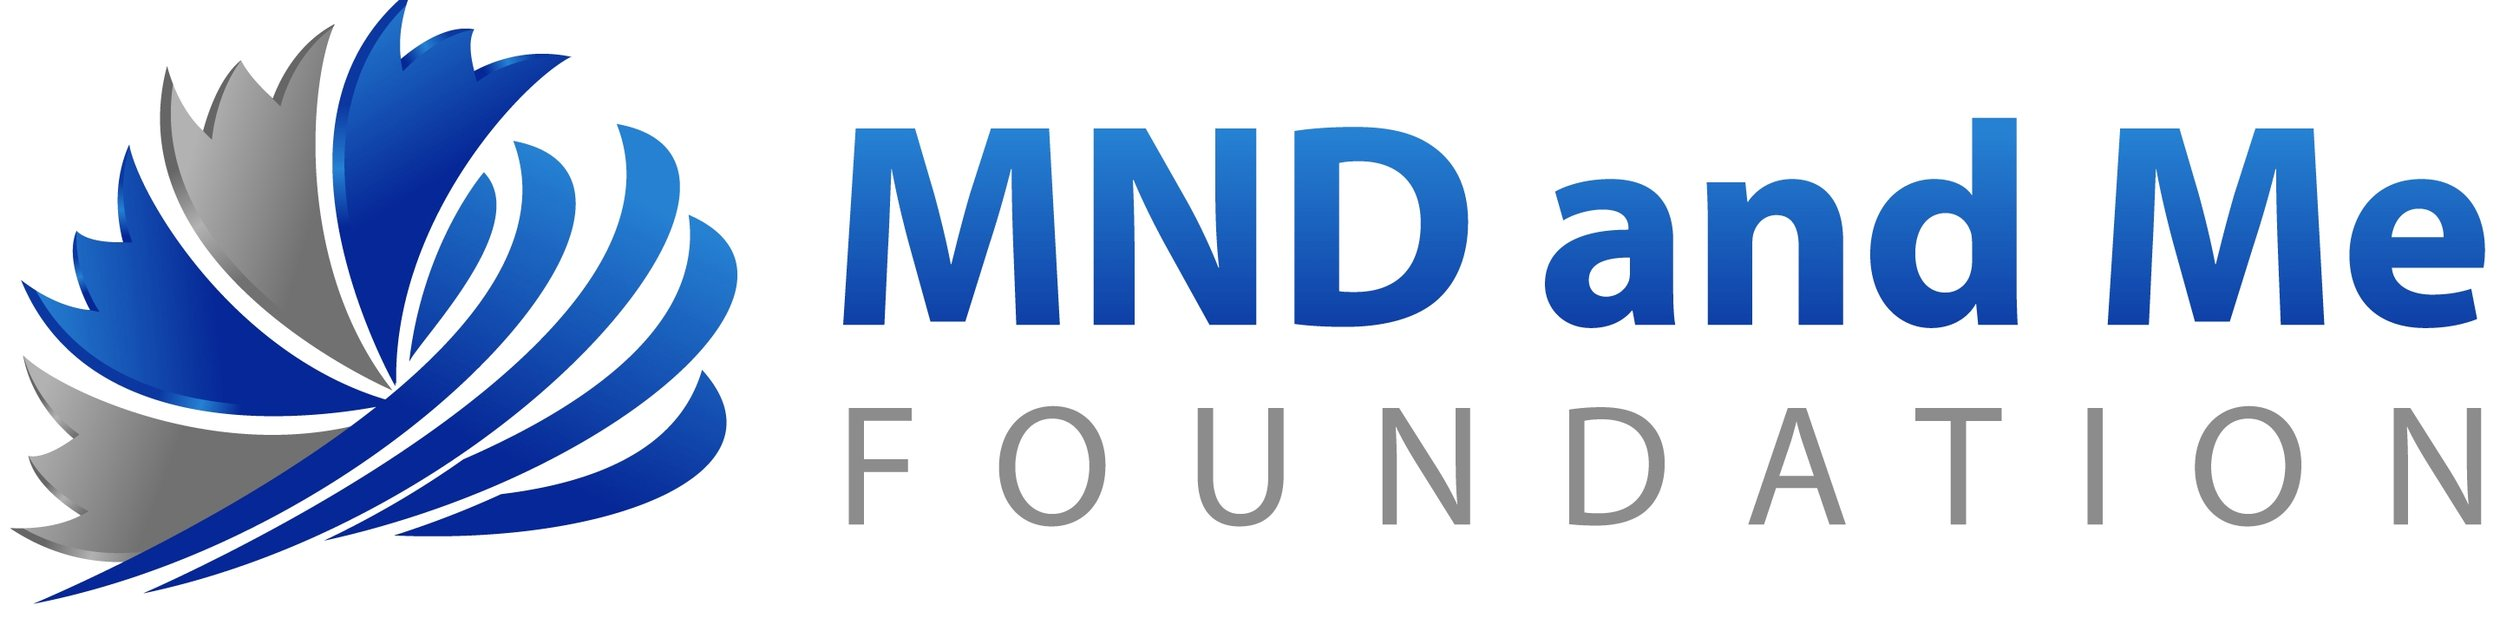 MND_and_Me_Official_Long.jpg